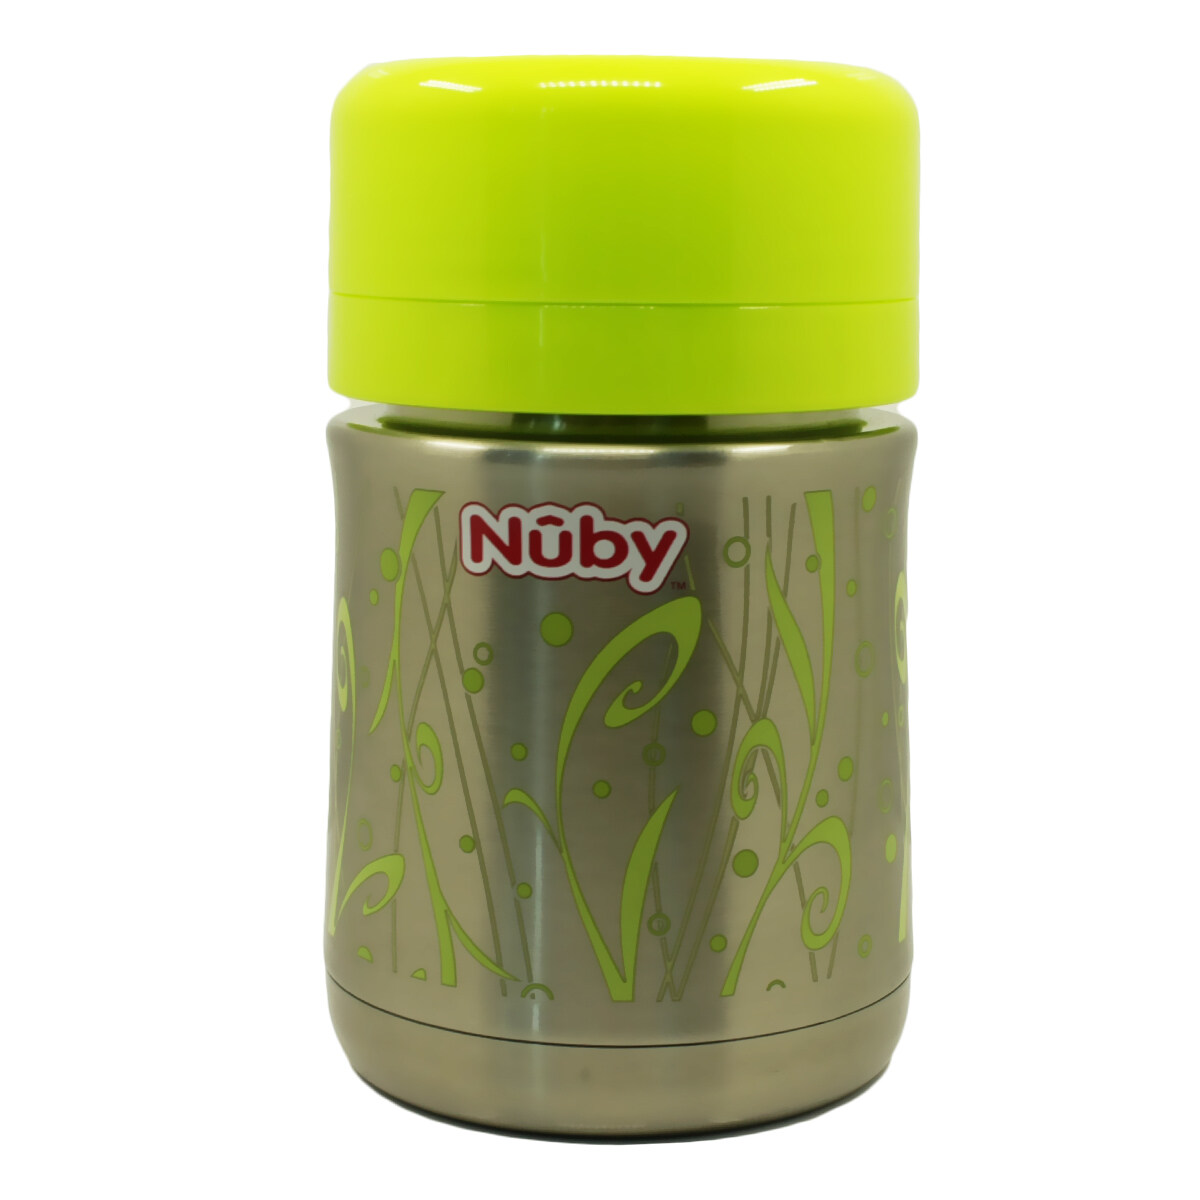 Nuby Stainless Steel Vacuum Insulated Food Jar With Spoon - (Green) 05470